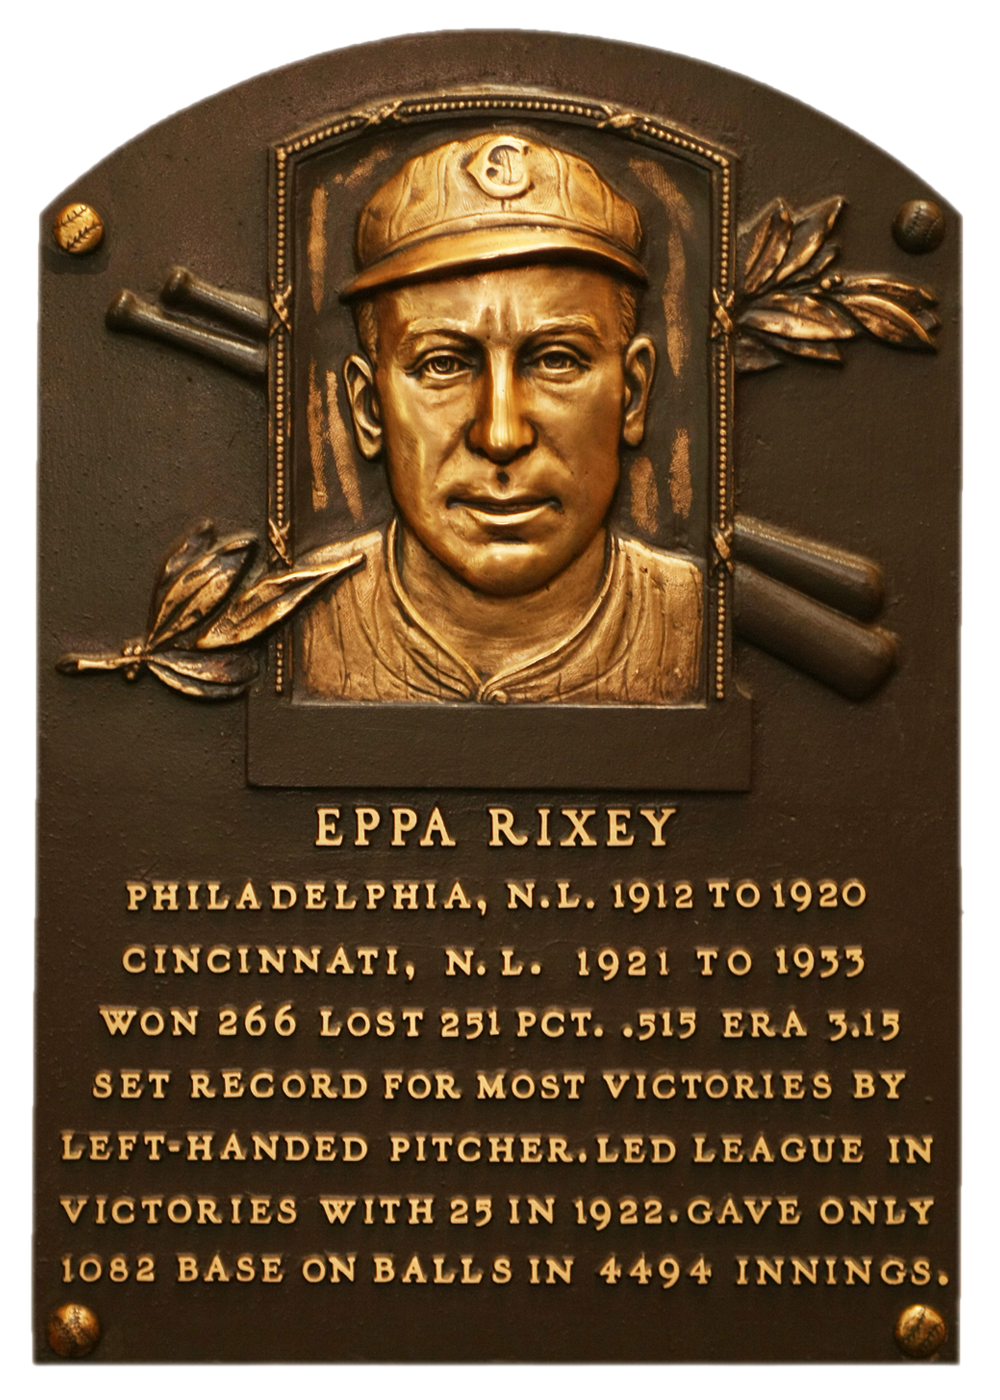 Culpeper native Eppa Rixey is the only former Cavalier in the Baseball Hall of Fame.